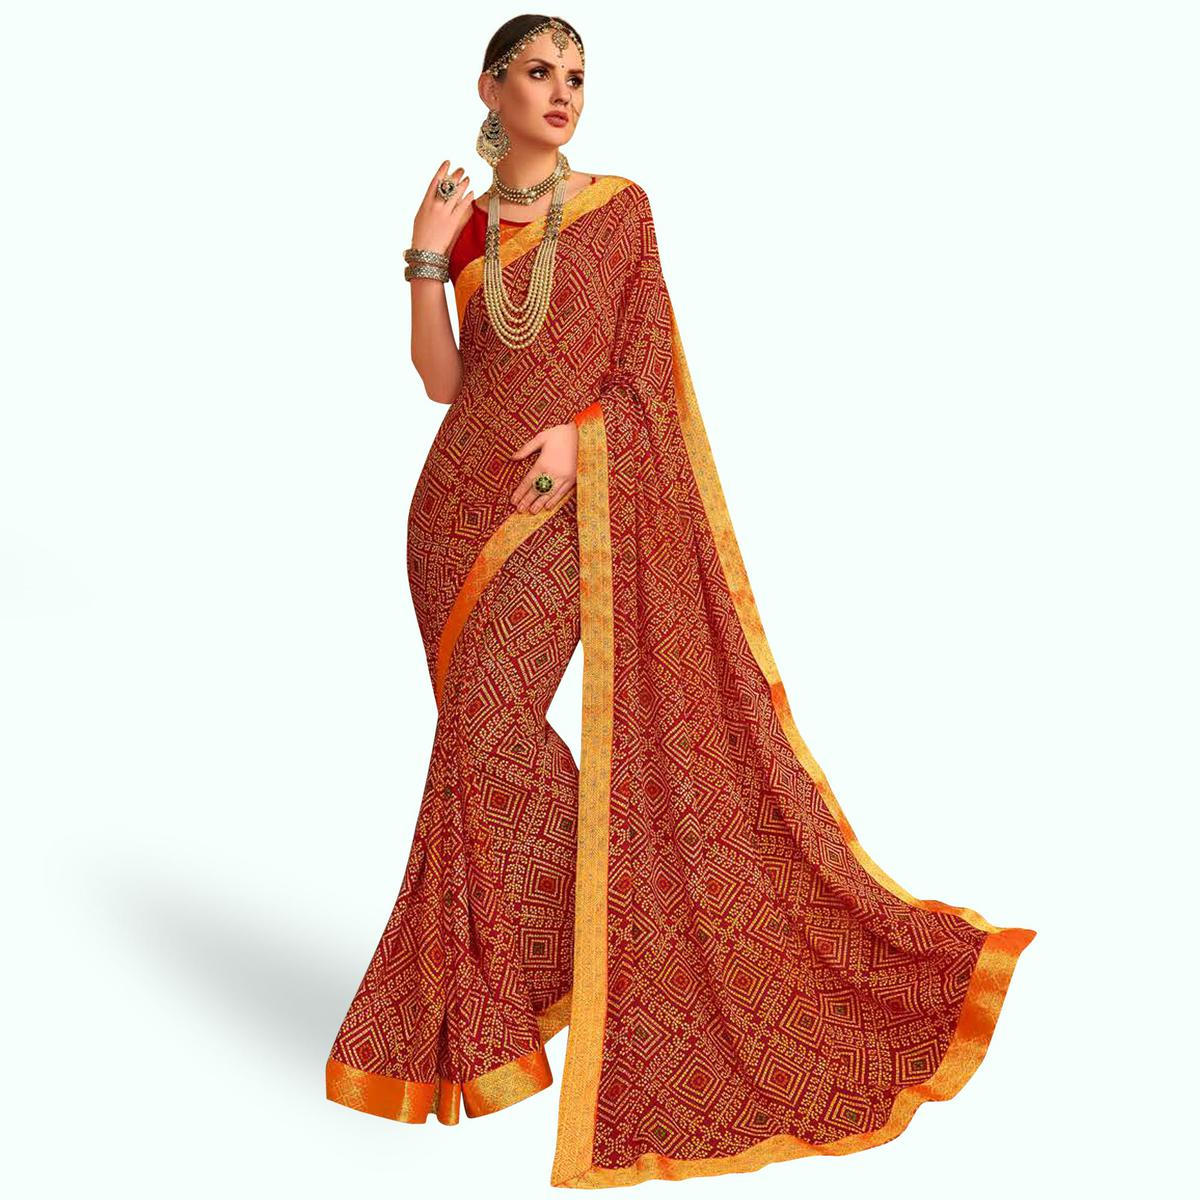 Delightful Red Colored Bandhani Printed Heavy Georgette Saree With Jacquard Lace Border